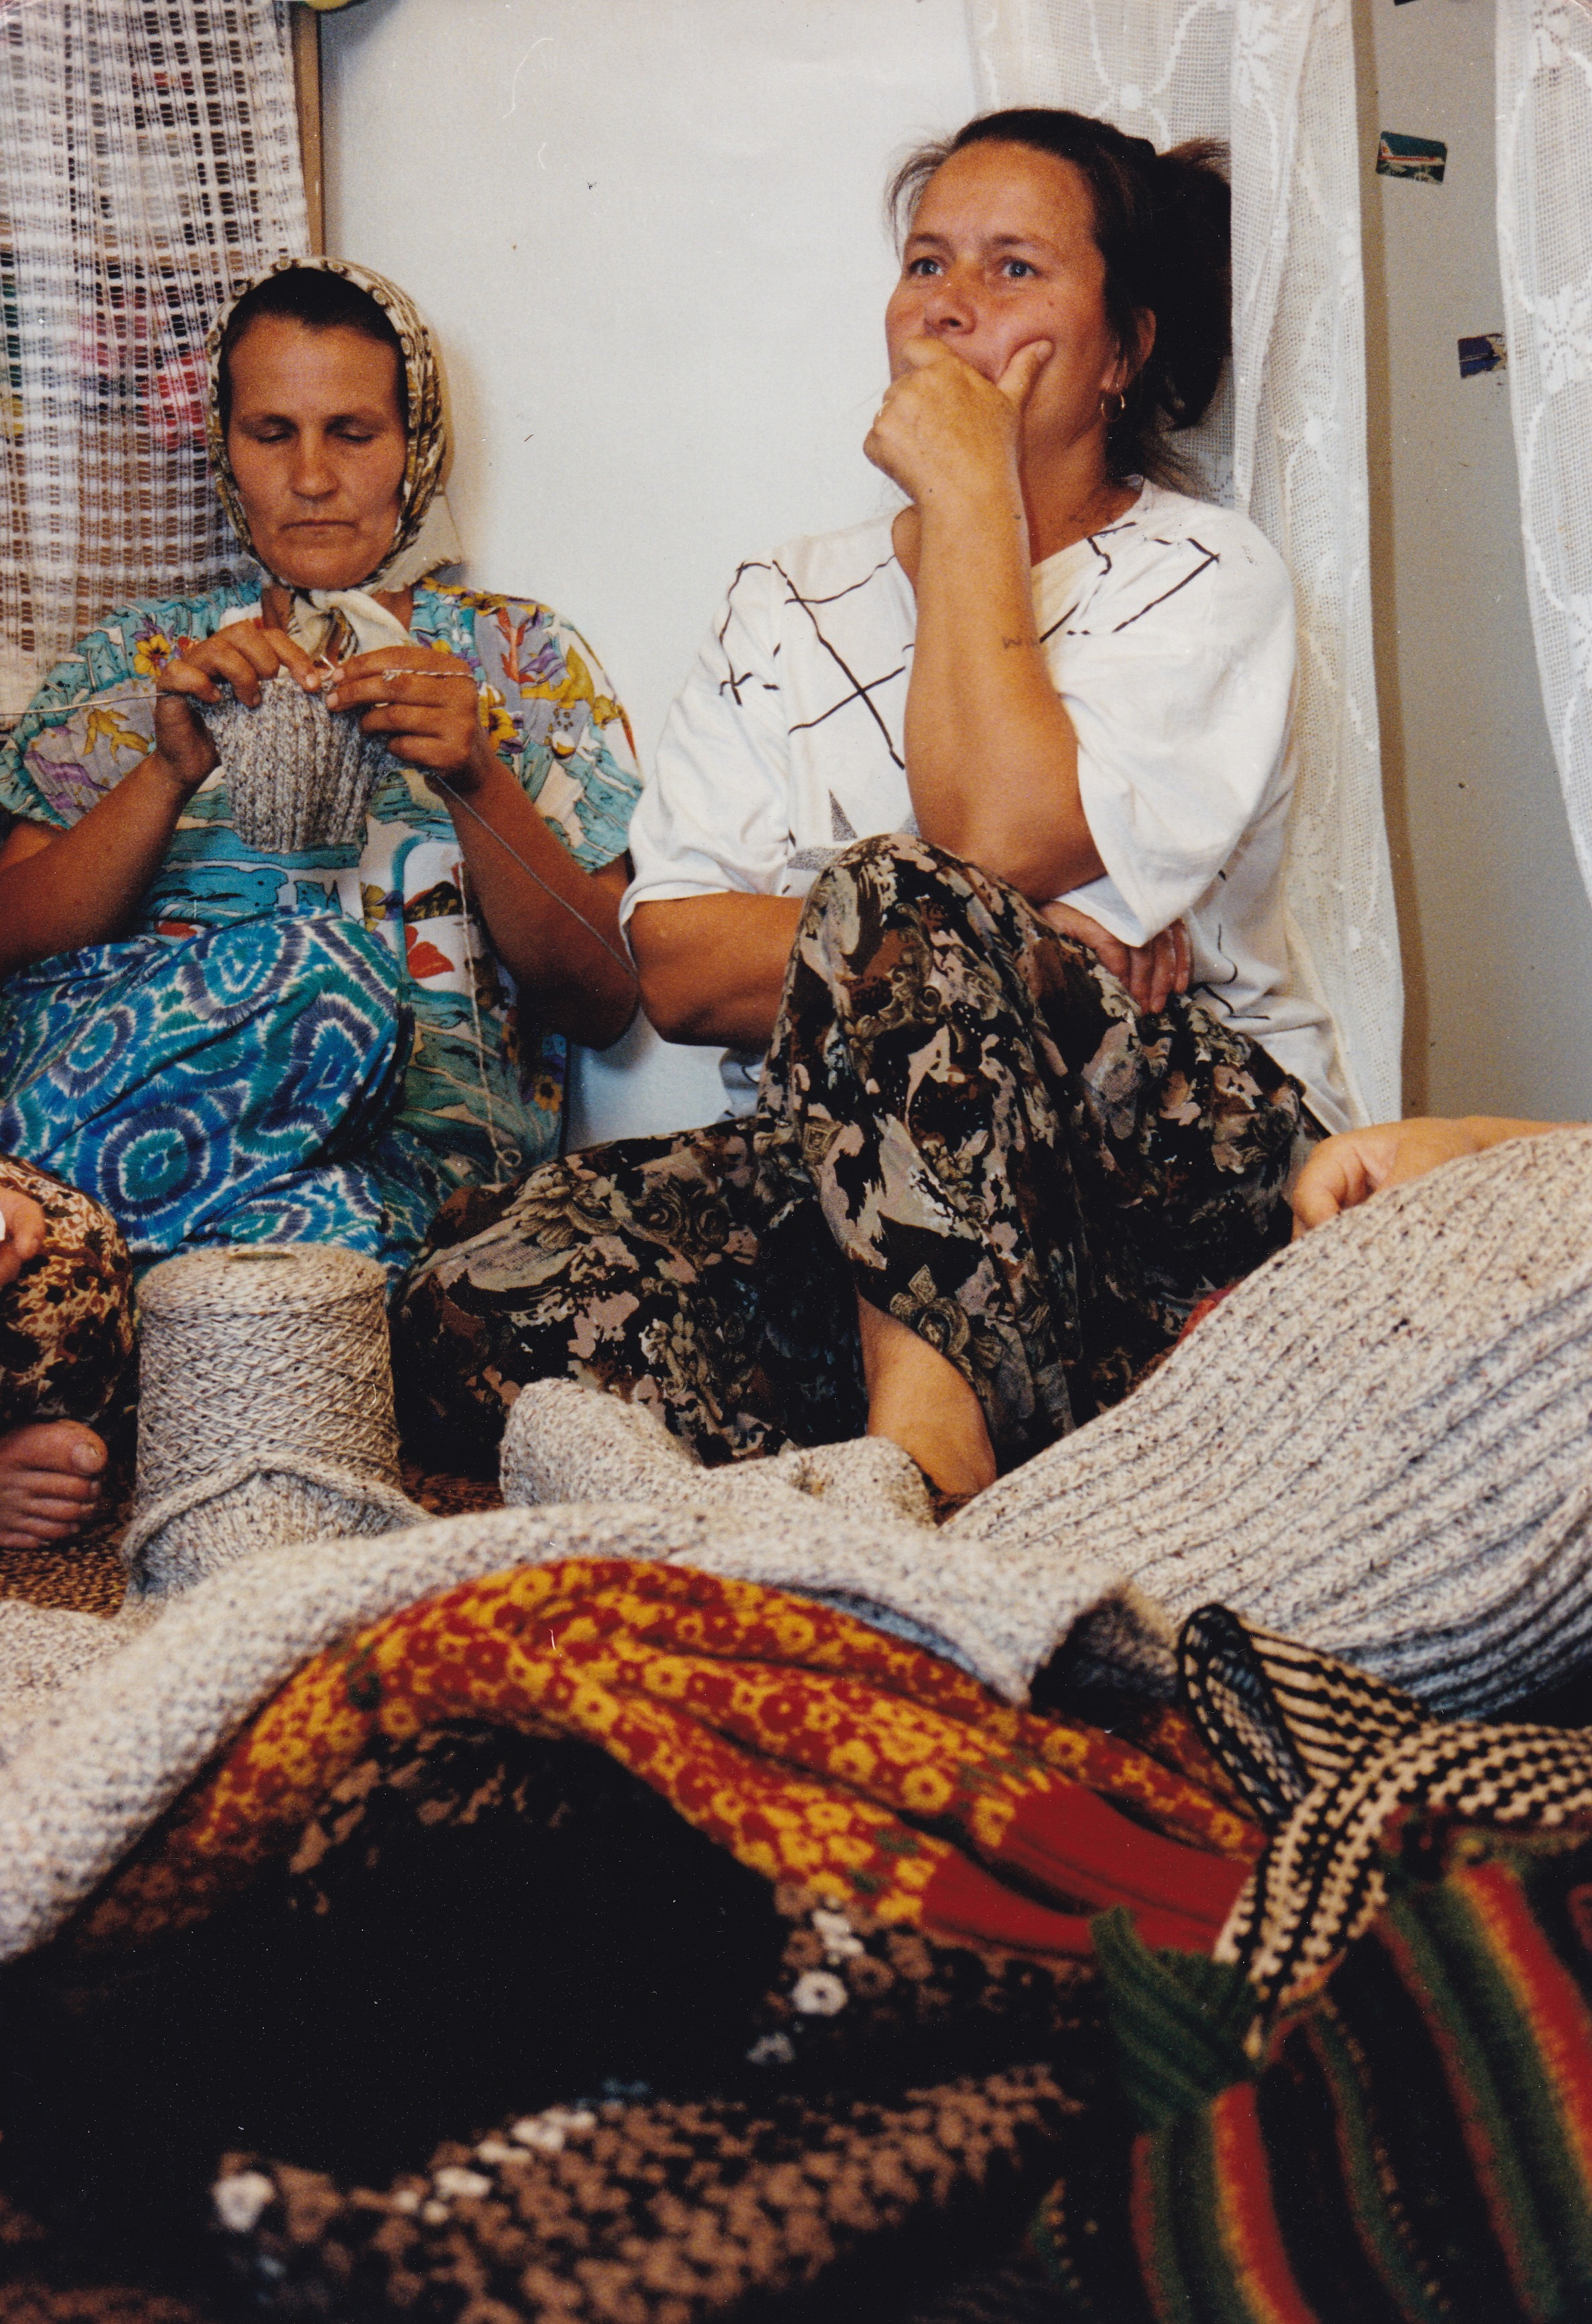 Knitting Together Nations collaboration in post-war Bosnia with SEED, UNESCO and World Bank